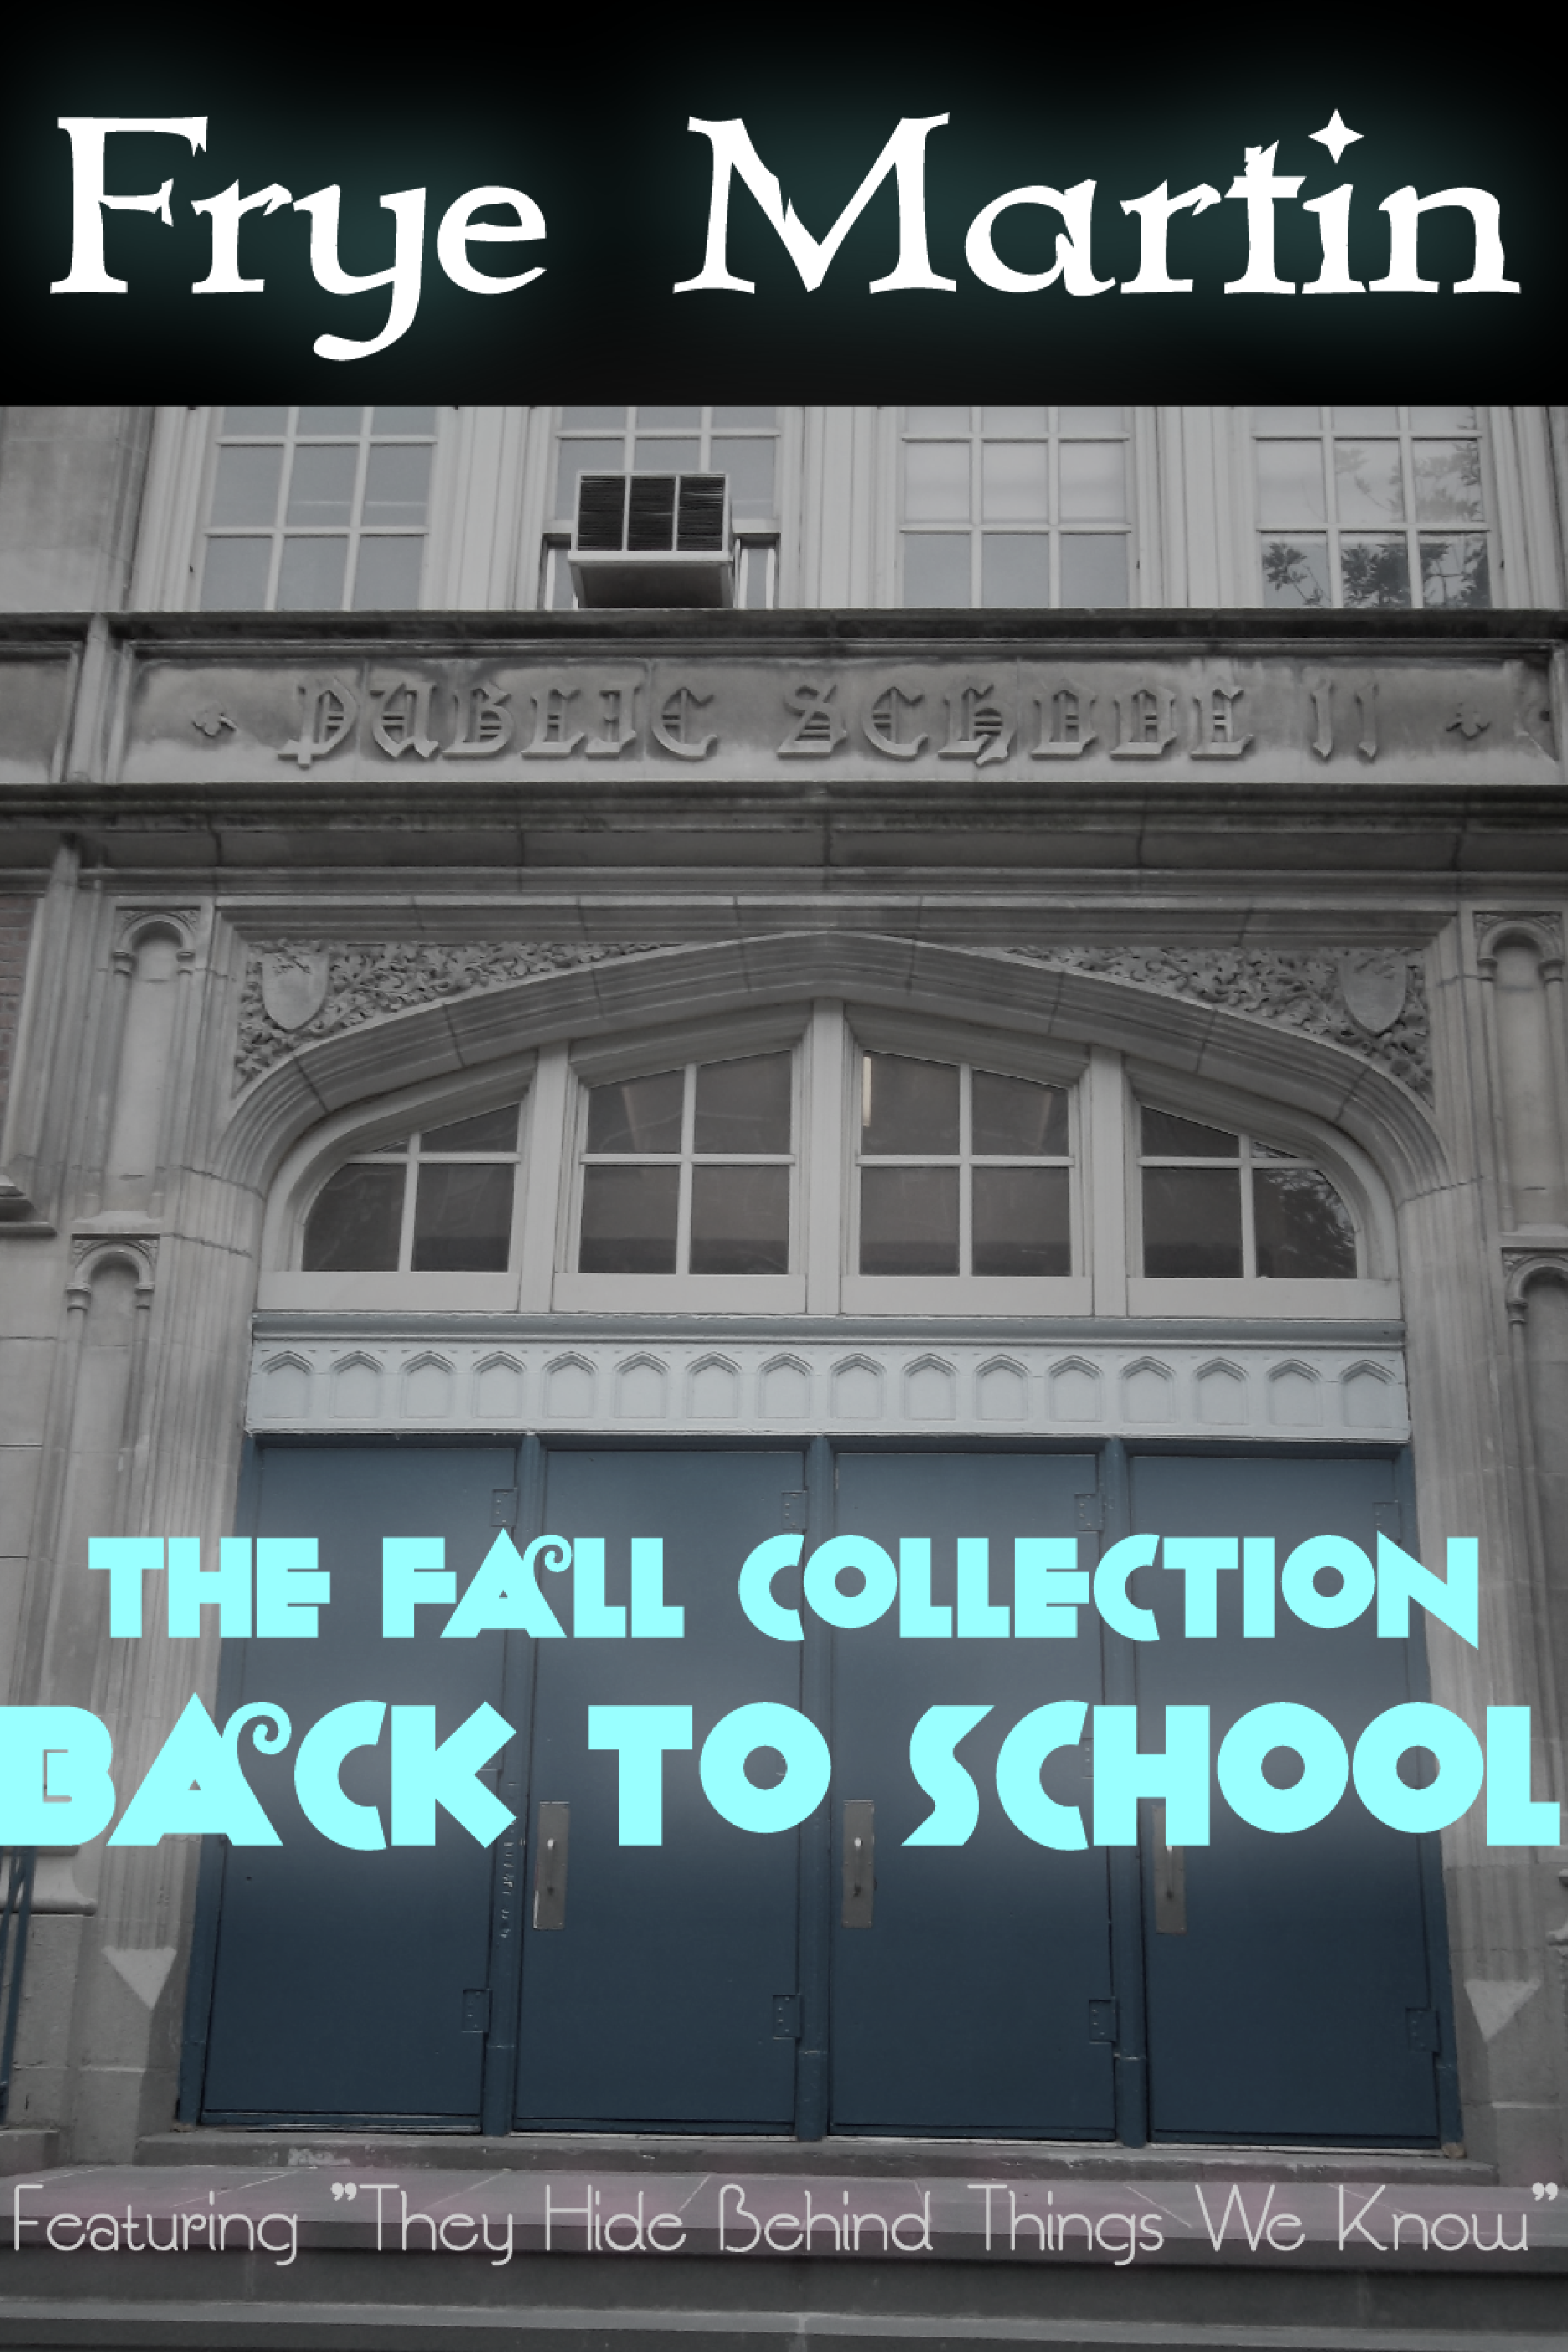 The Fall Collection: Back to School, an Ebook by Frye Martin